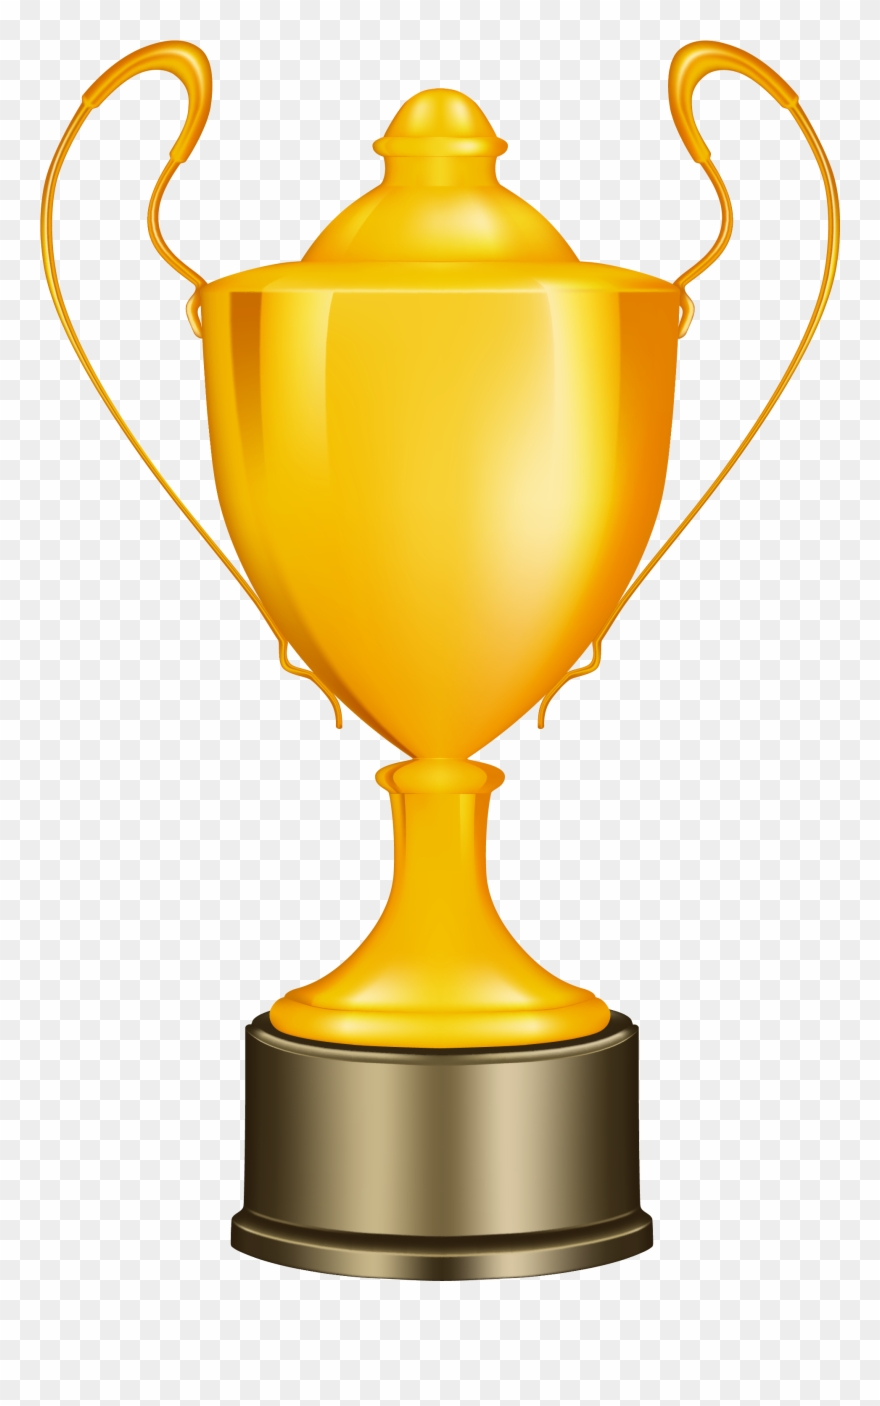 Trophy cup clipart svg library Transparent Gold Cup Trophy Clipart 7 Image - Trophy Clipart ... svg library